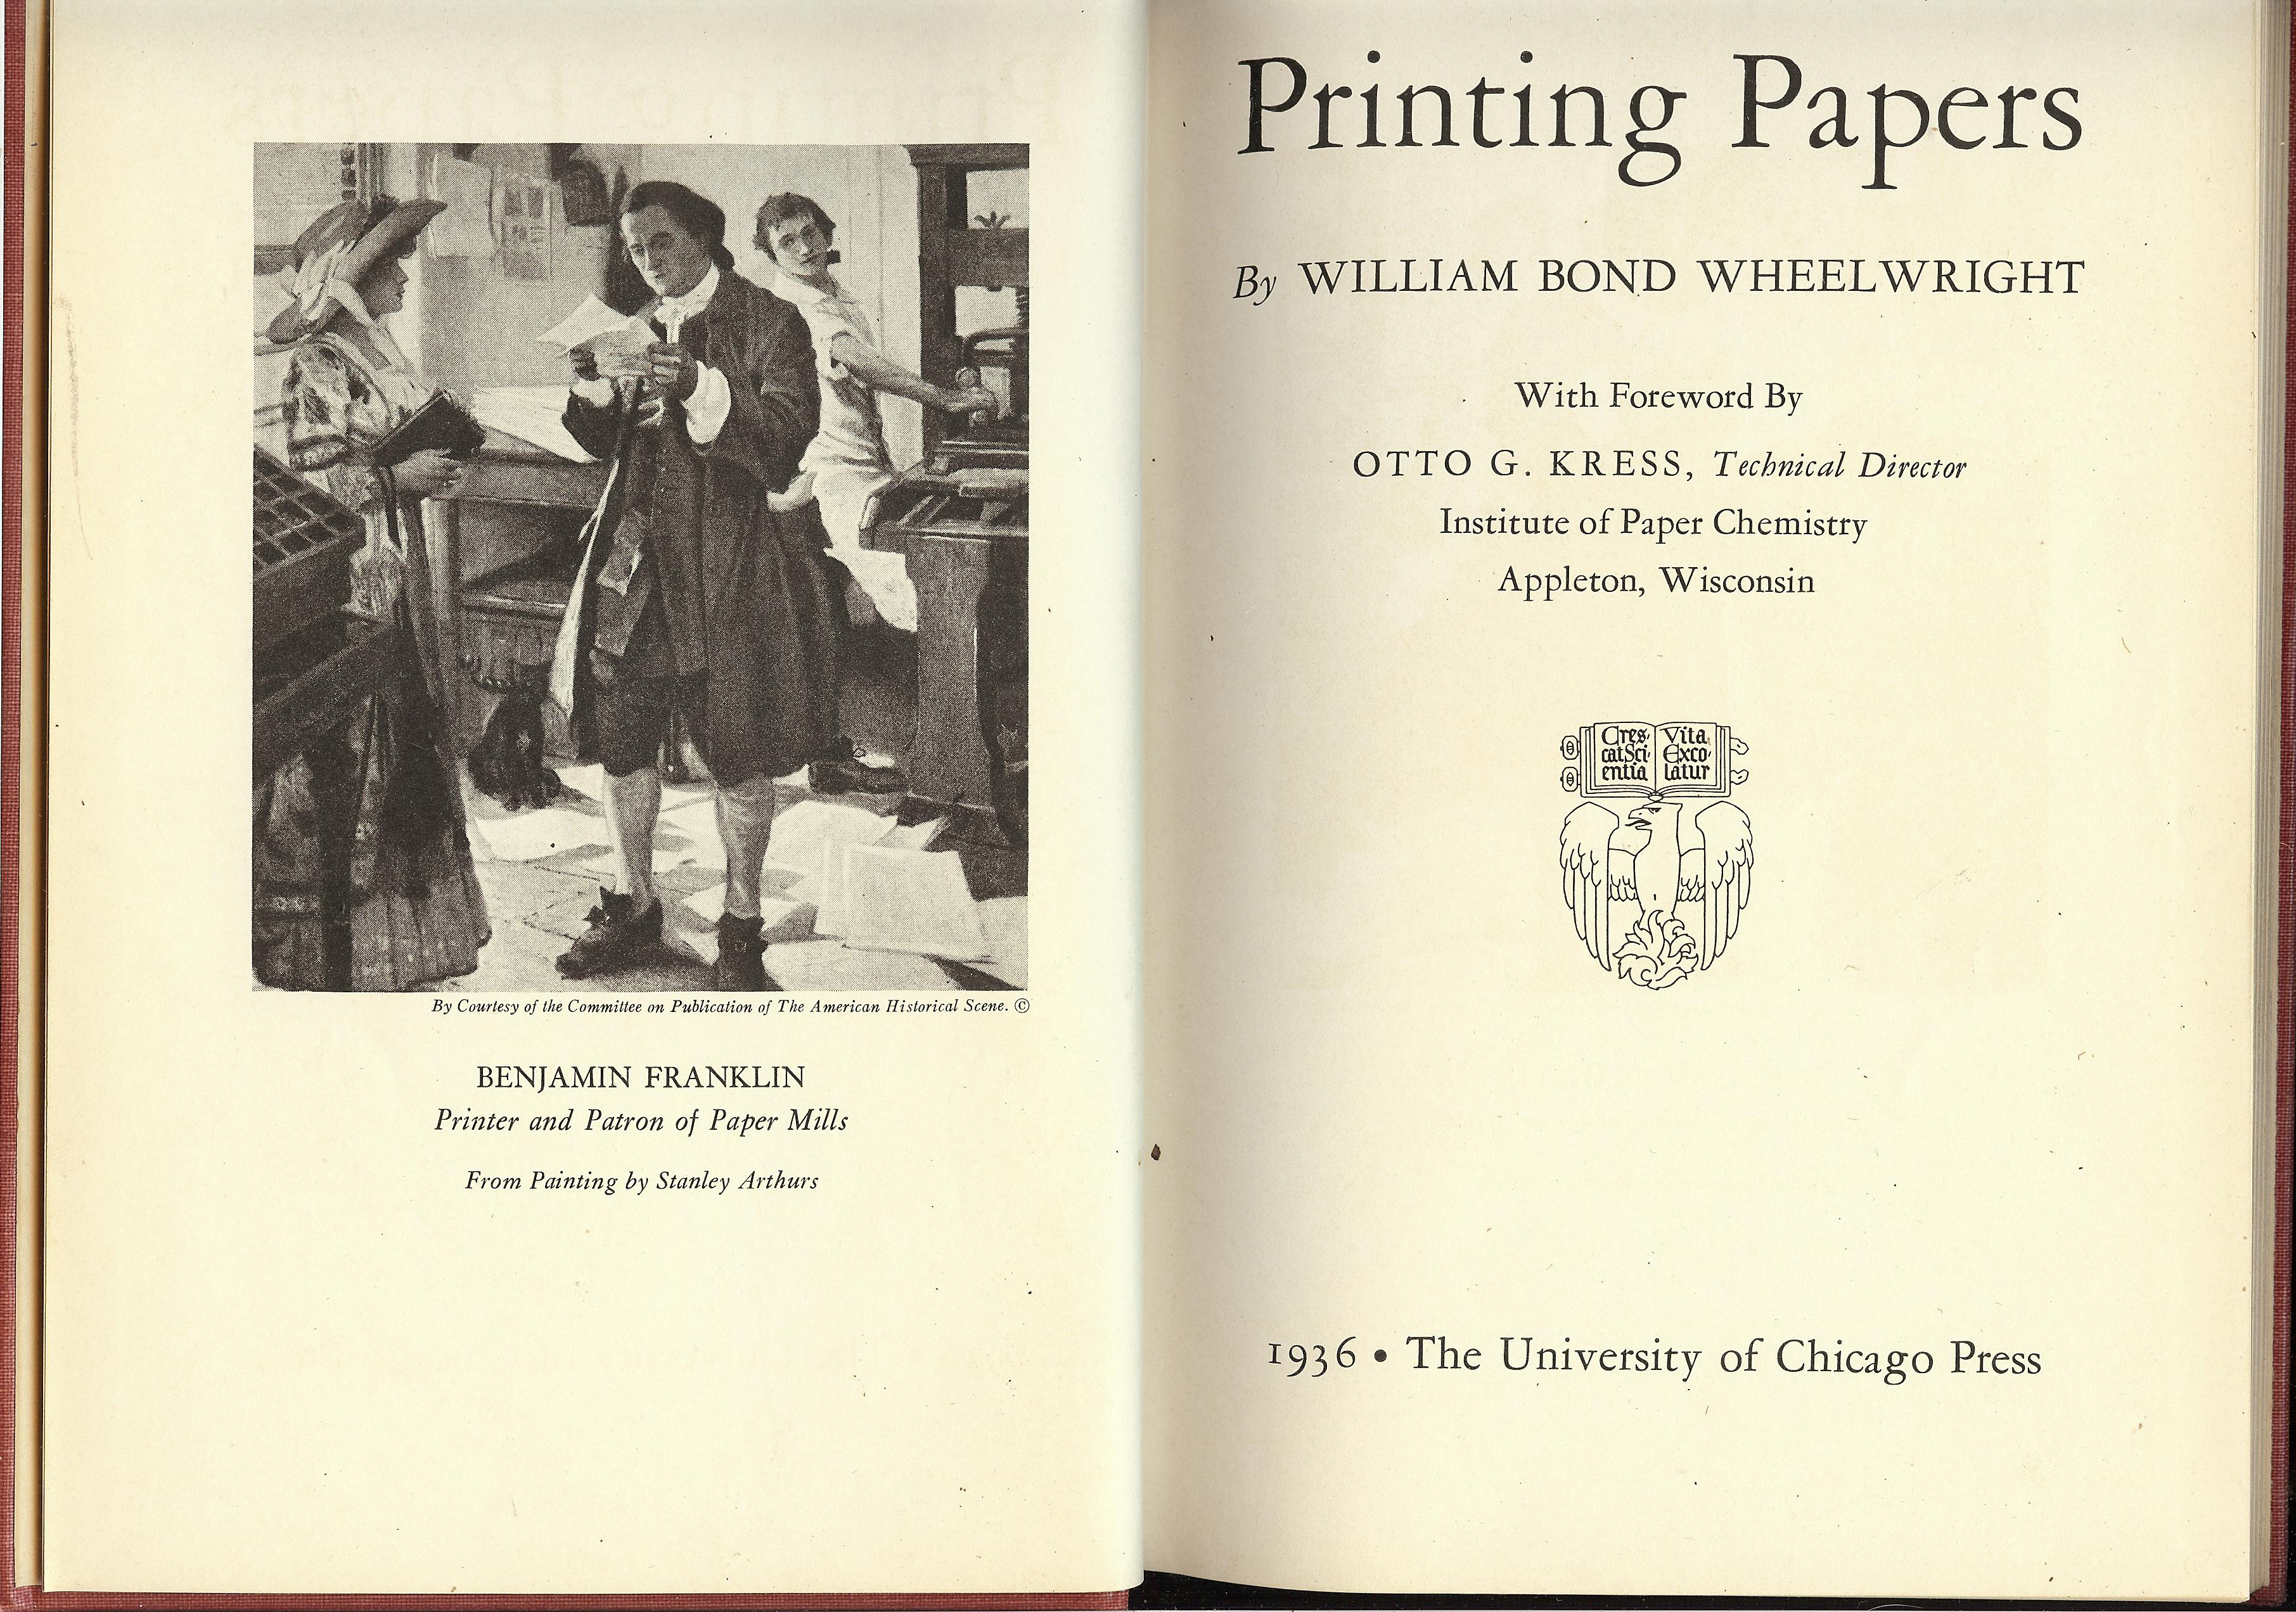 Printing Papers  Limited Edition 2 000 Copies By